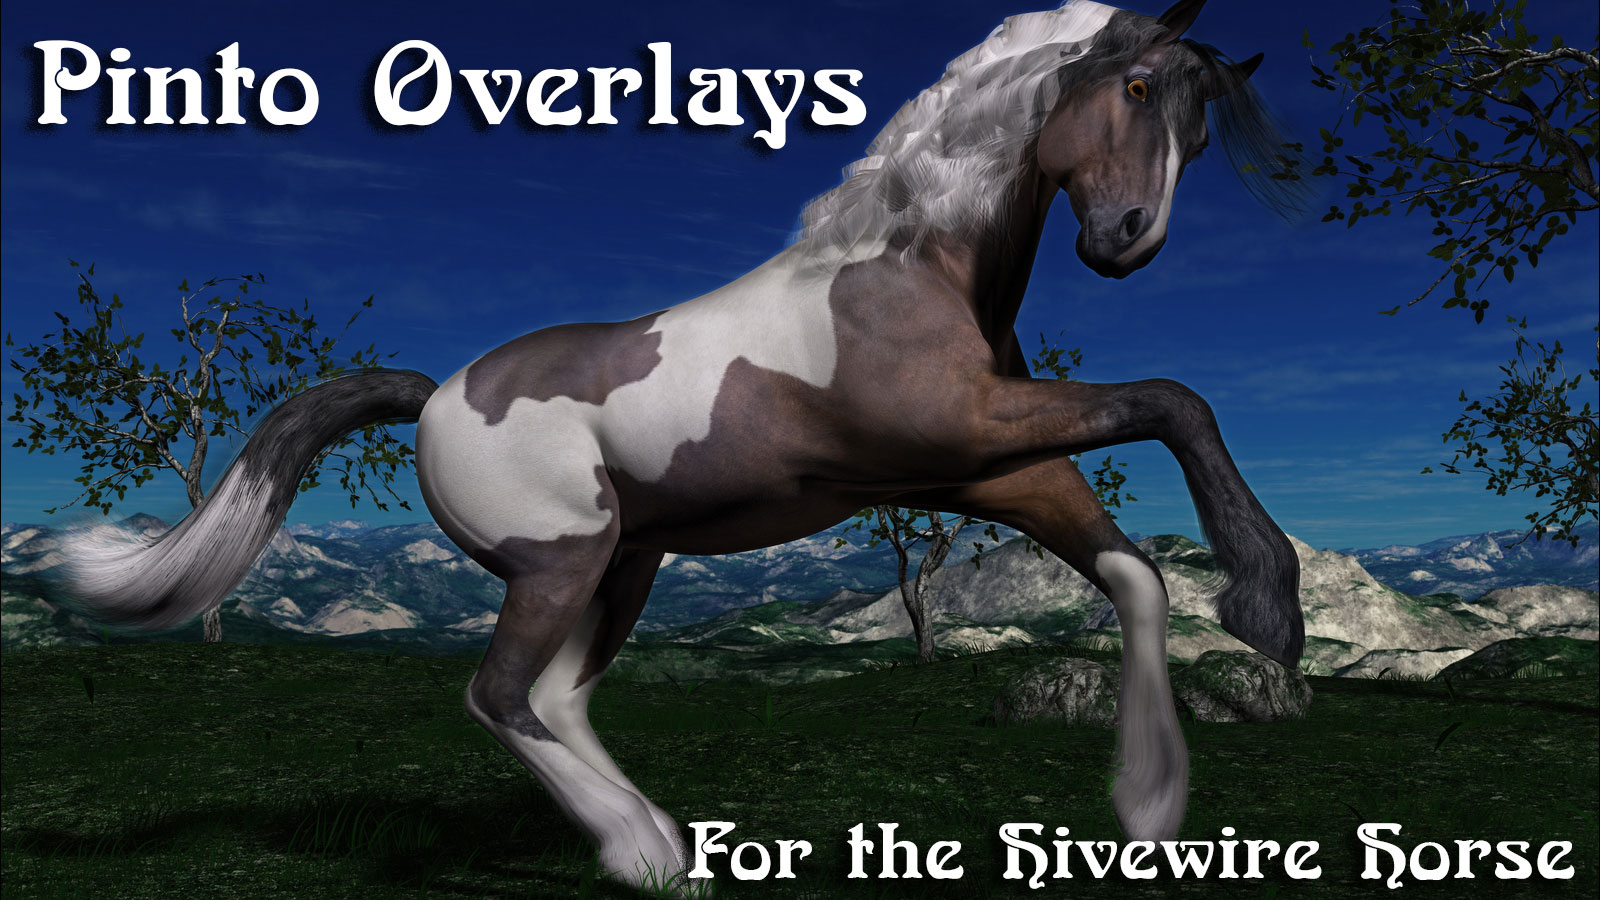 12064-dwd-pinto-overlays-for-the-hivewire-horse-main.jpg